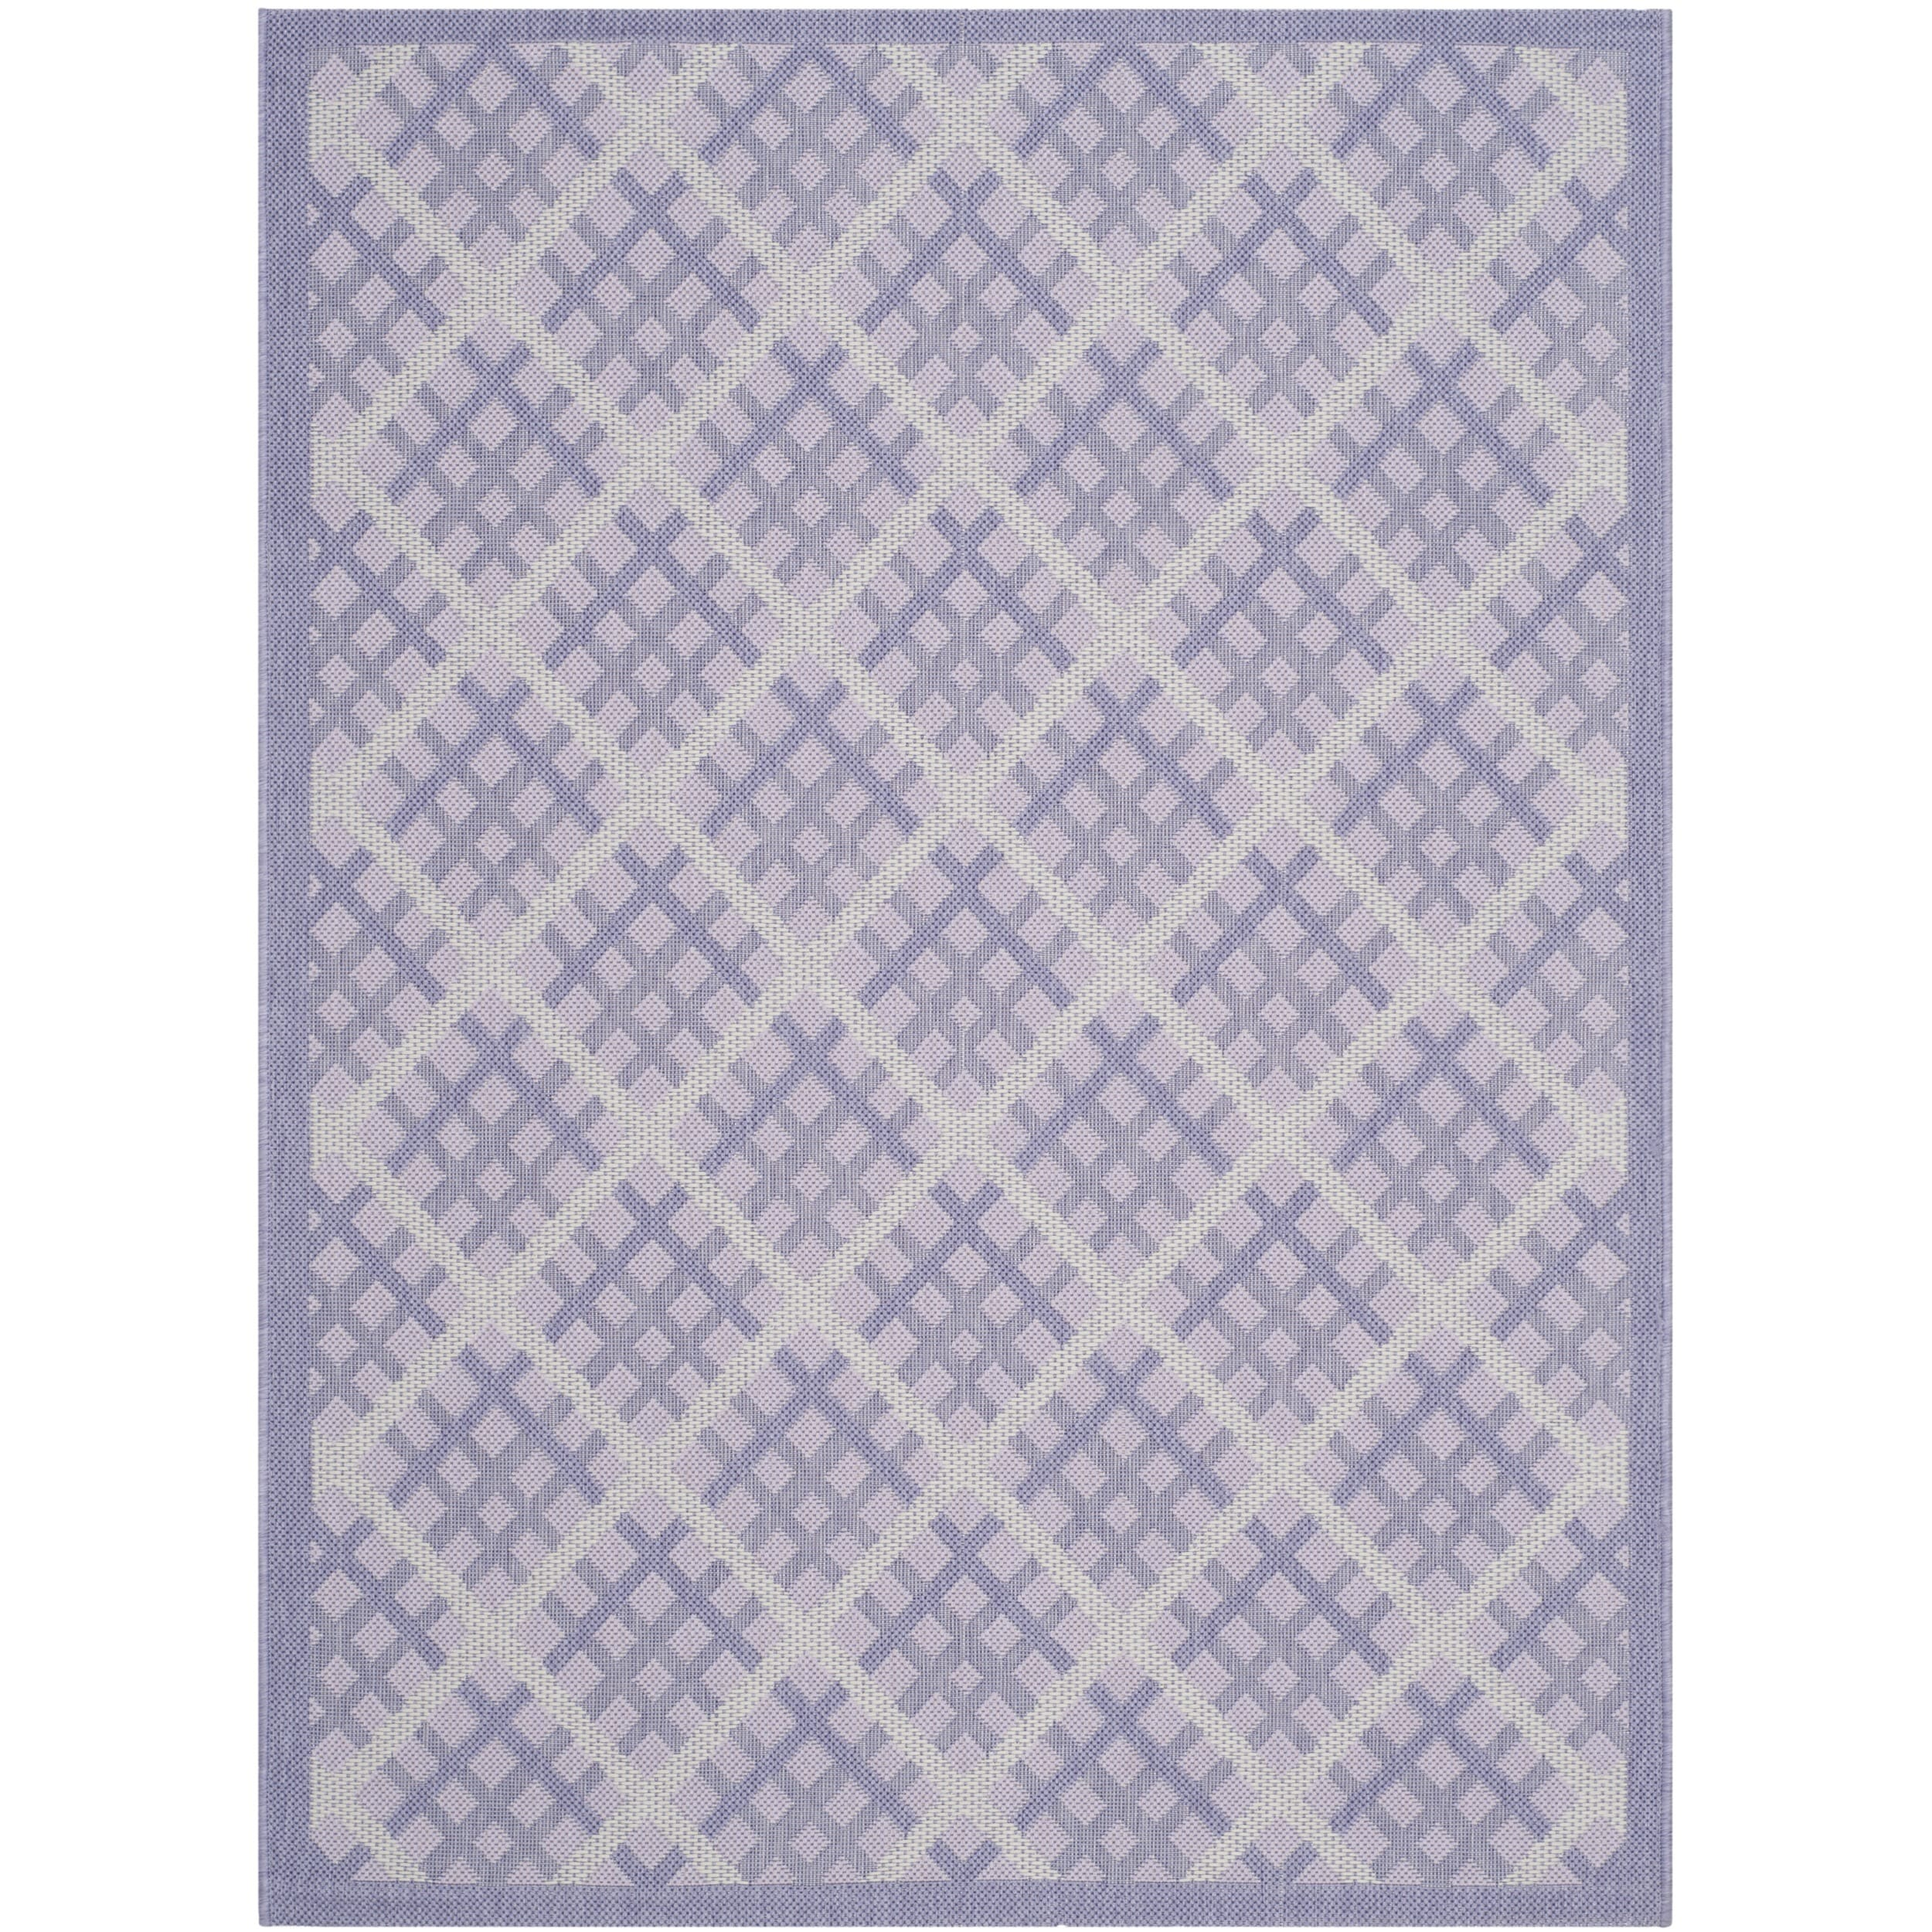 Safavieh Indoor/ Outdoor Courtyard Lilac/ Dark Lilac Rug (4' x 5'7) at Sears.com